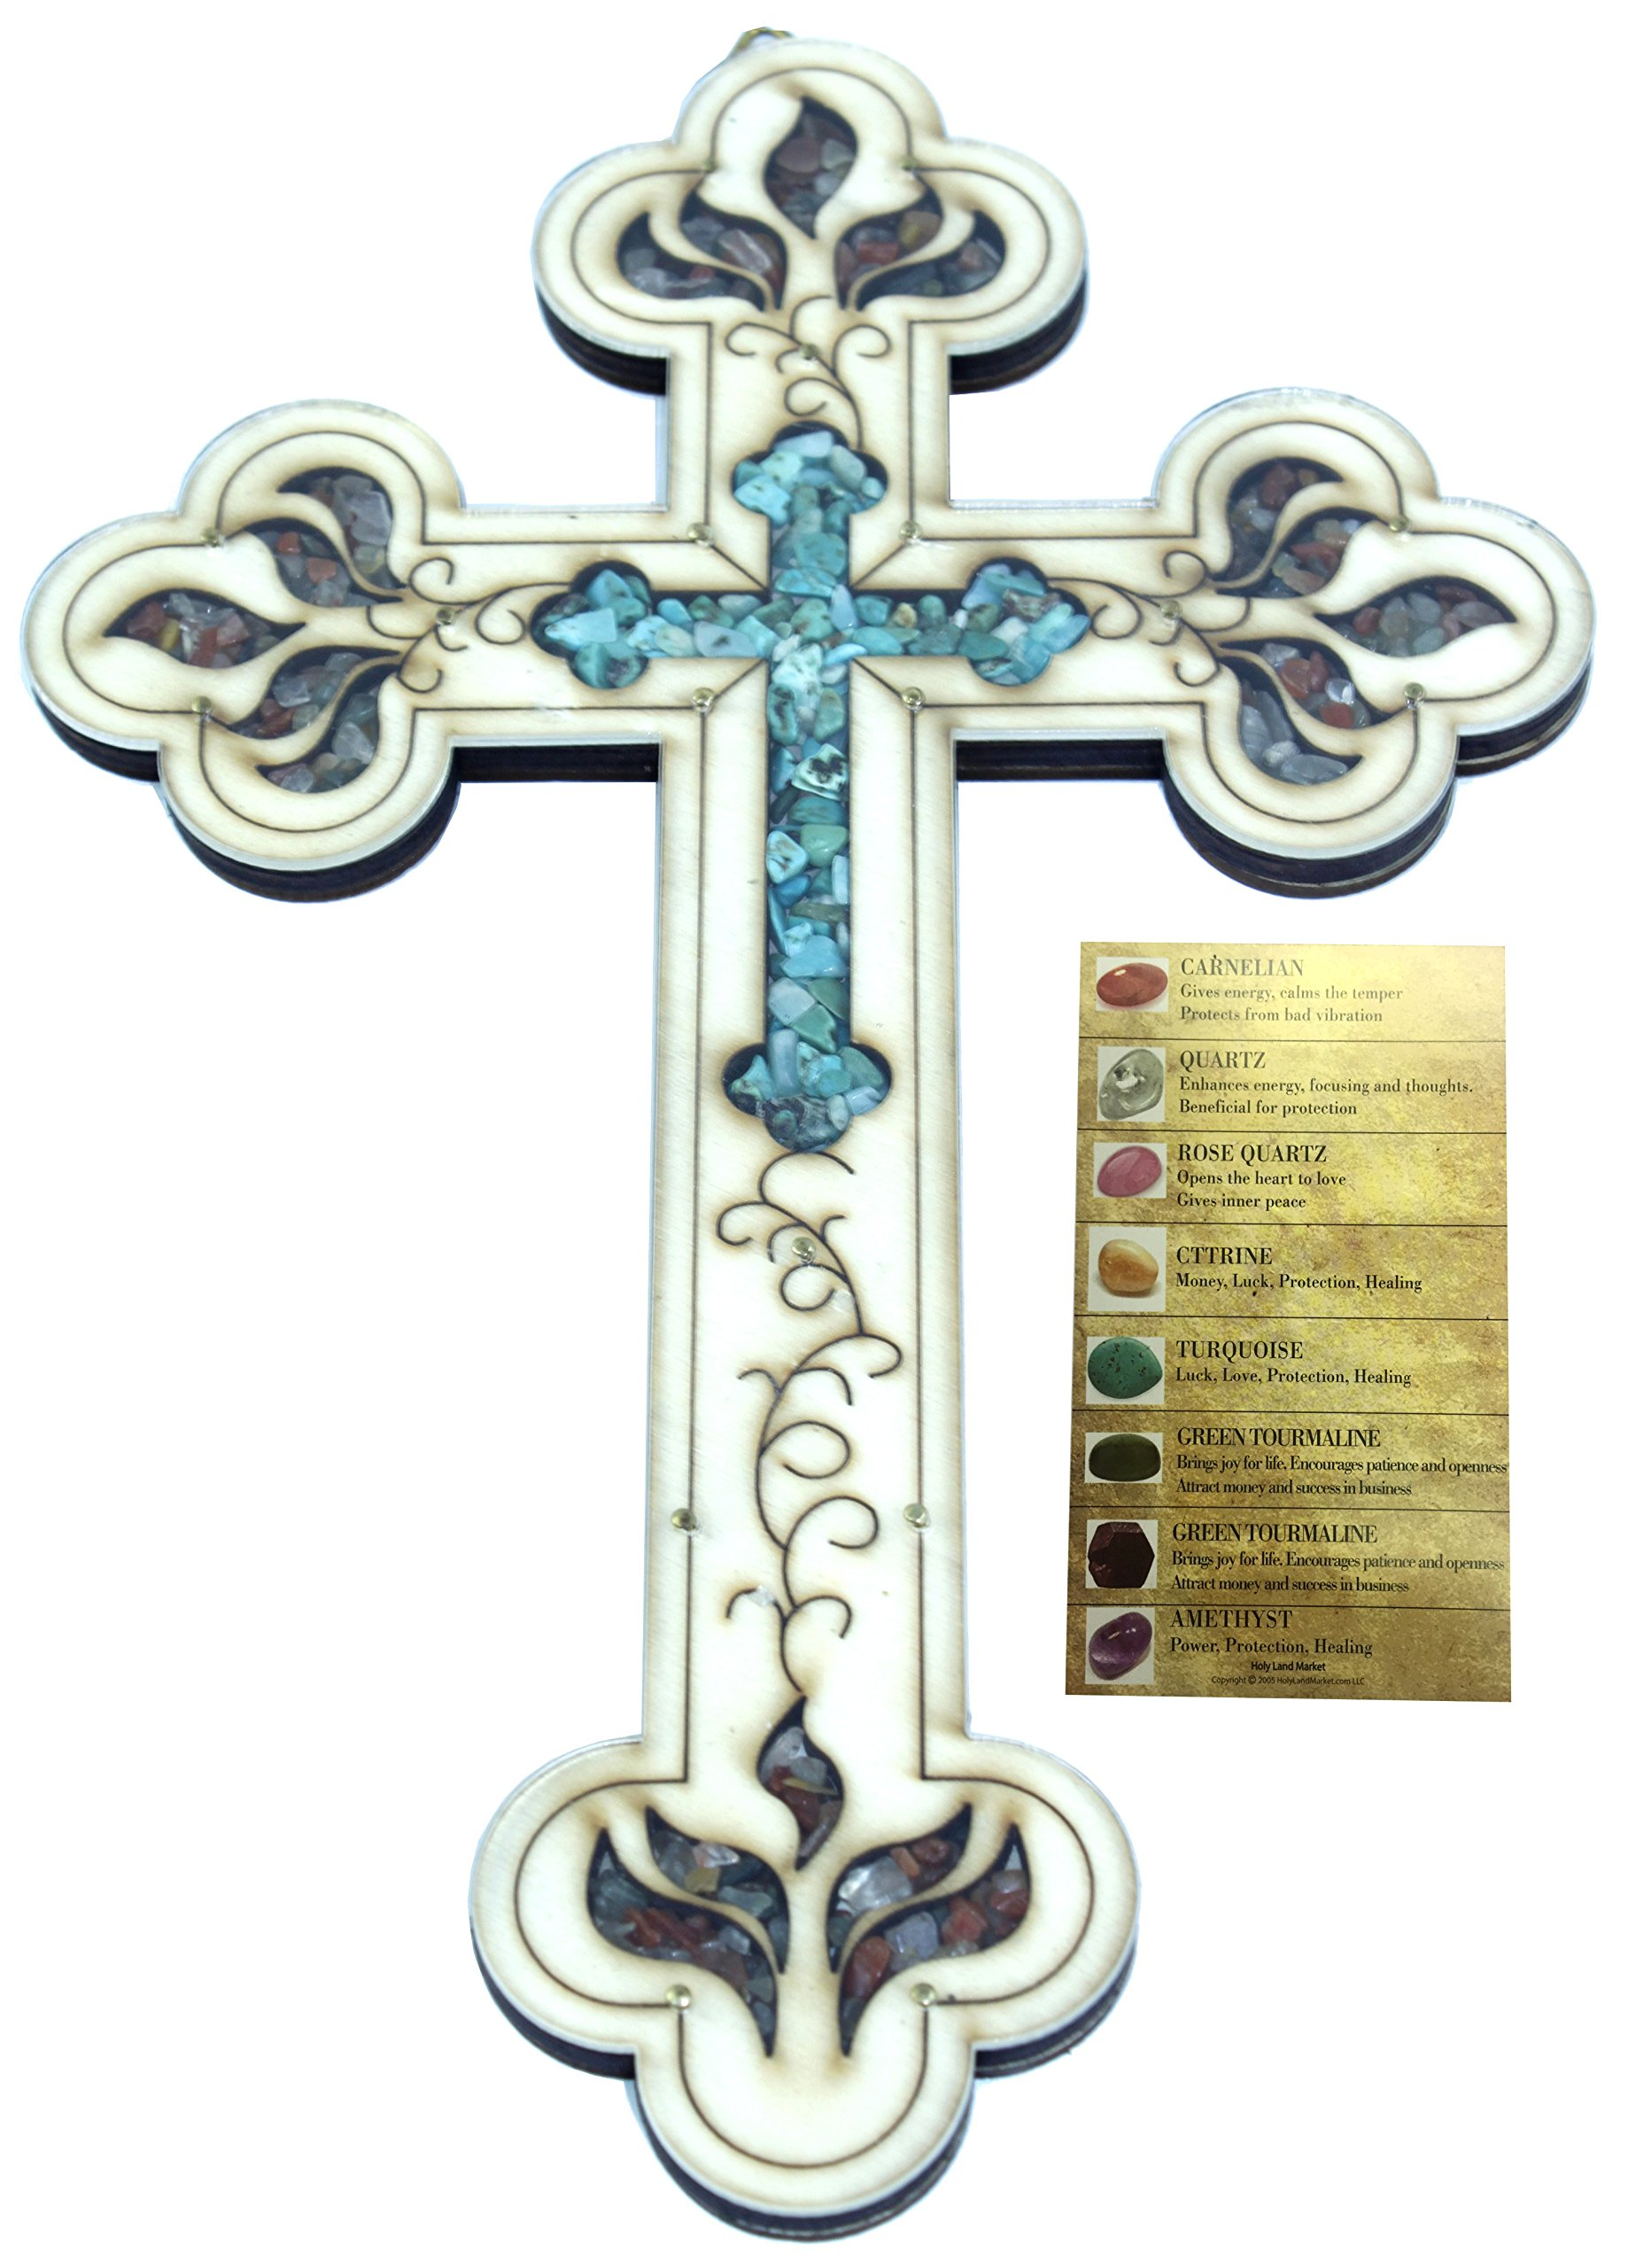 Vintage Cross filled with Turquoise and Multi-color semi precious stones from the Holy Land